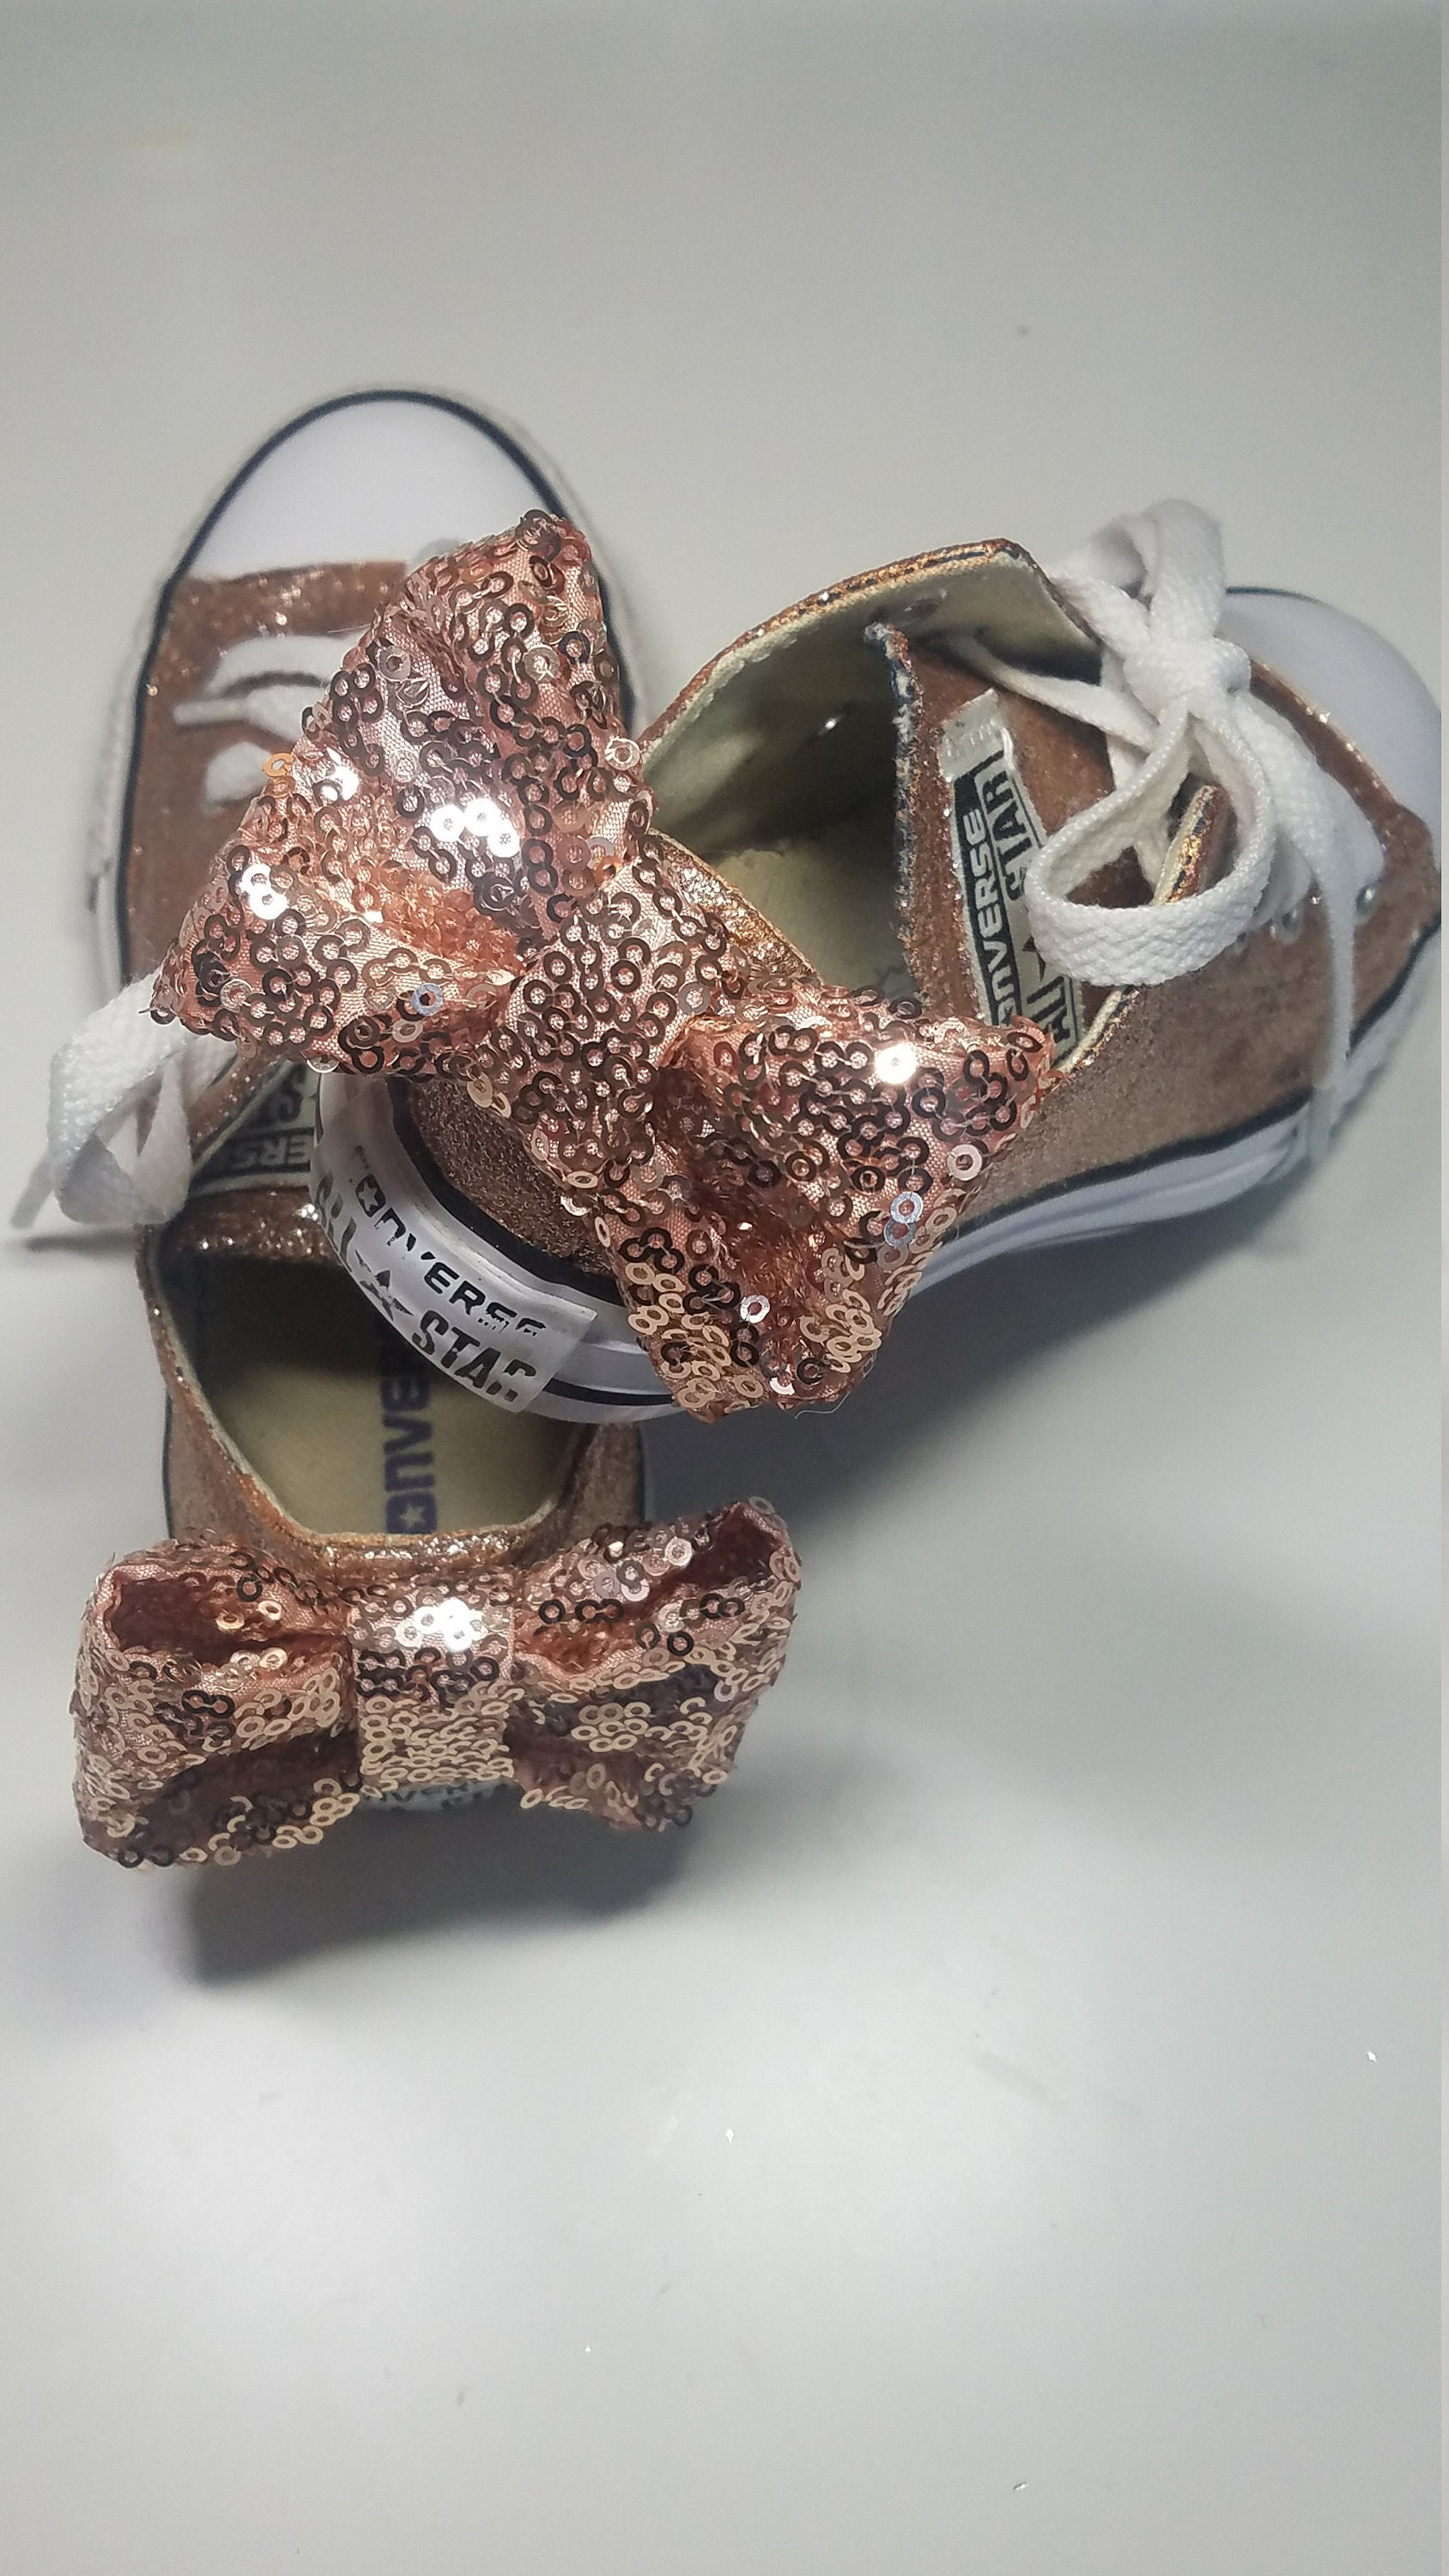 Rose Gold Glitter Converse or Vans Shoes w  BOW For weddings  4e4af25aed